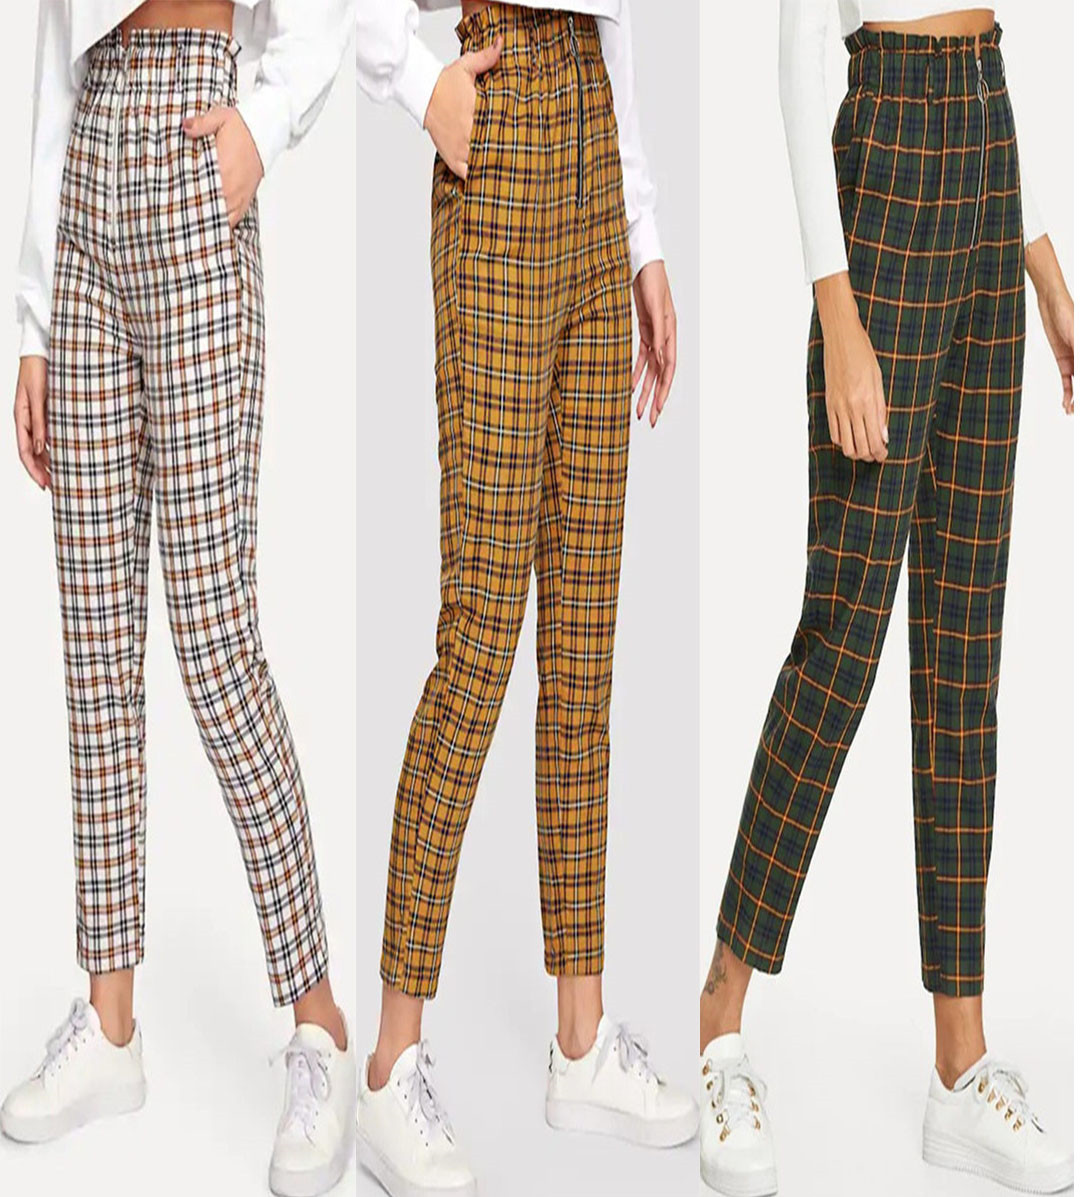 Streetwear Cargo   Pants   Women Casual Plaid Joggers High Waist Female Trousers Ladies Ankle-length   Pants     Capri   PT009